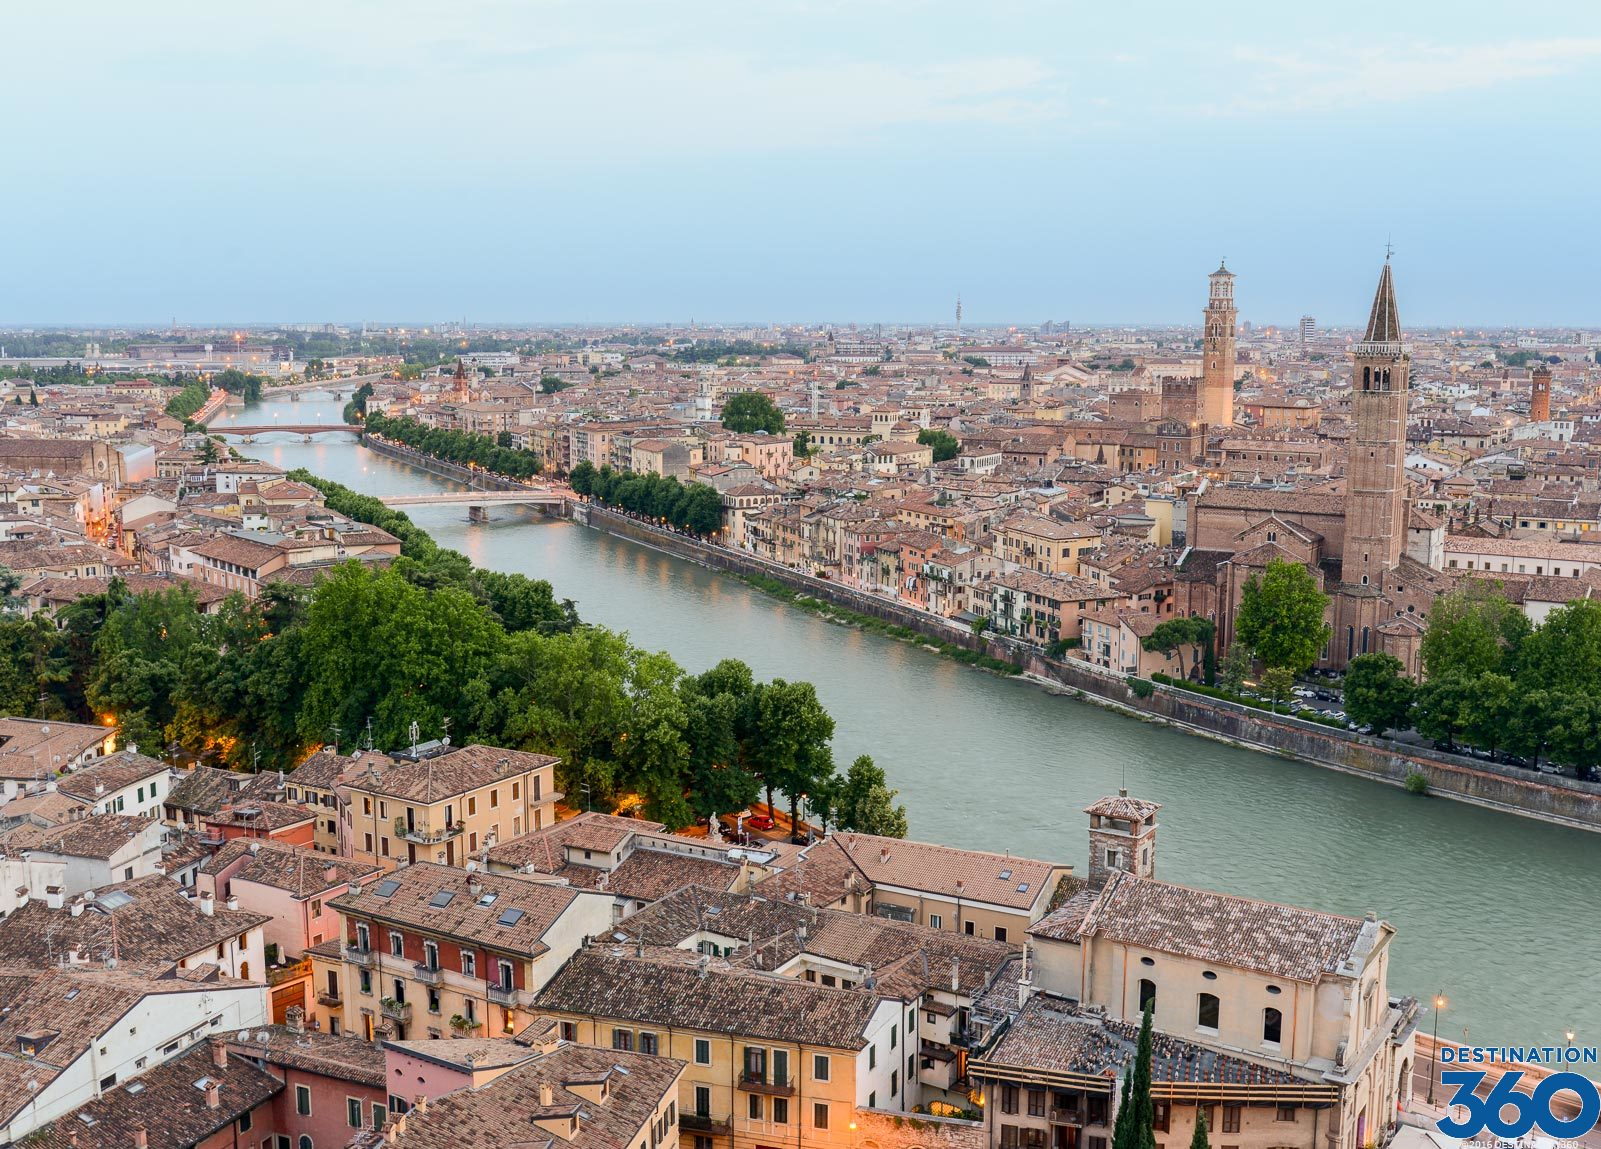 Luxury Hotels In Verona Italy